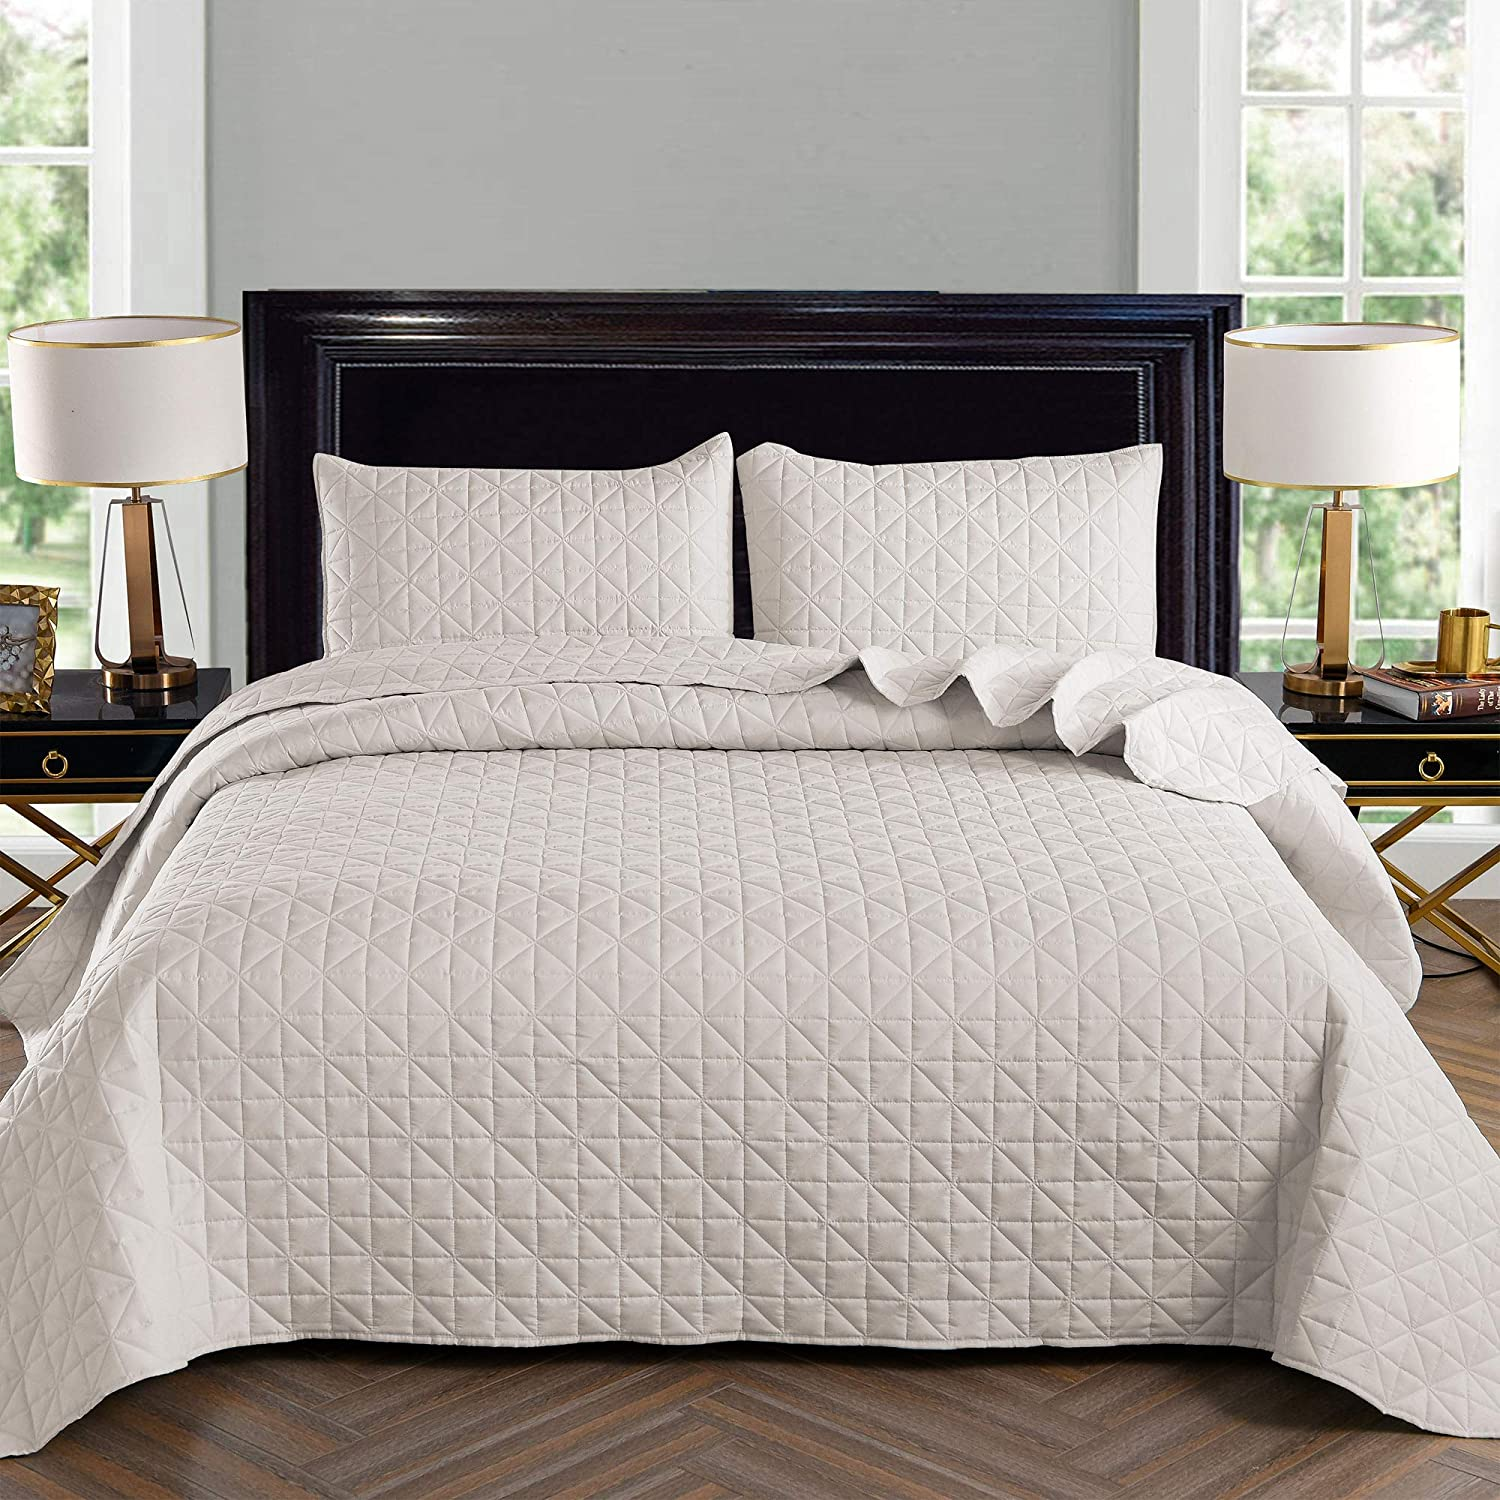 Exclusivo Mezcla 3-Piece Queen Size Quilt Set with Pillow Shams, as Bedspread/Coverlet/Bed Cover(Grid Weave Bone) - Soft, Lightweight, Reversible& Hypoallergenic